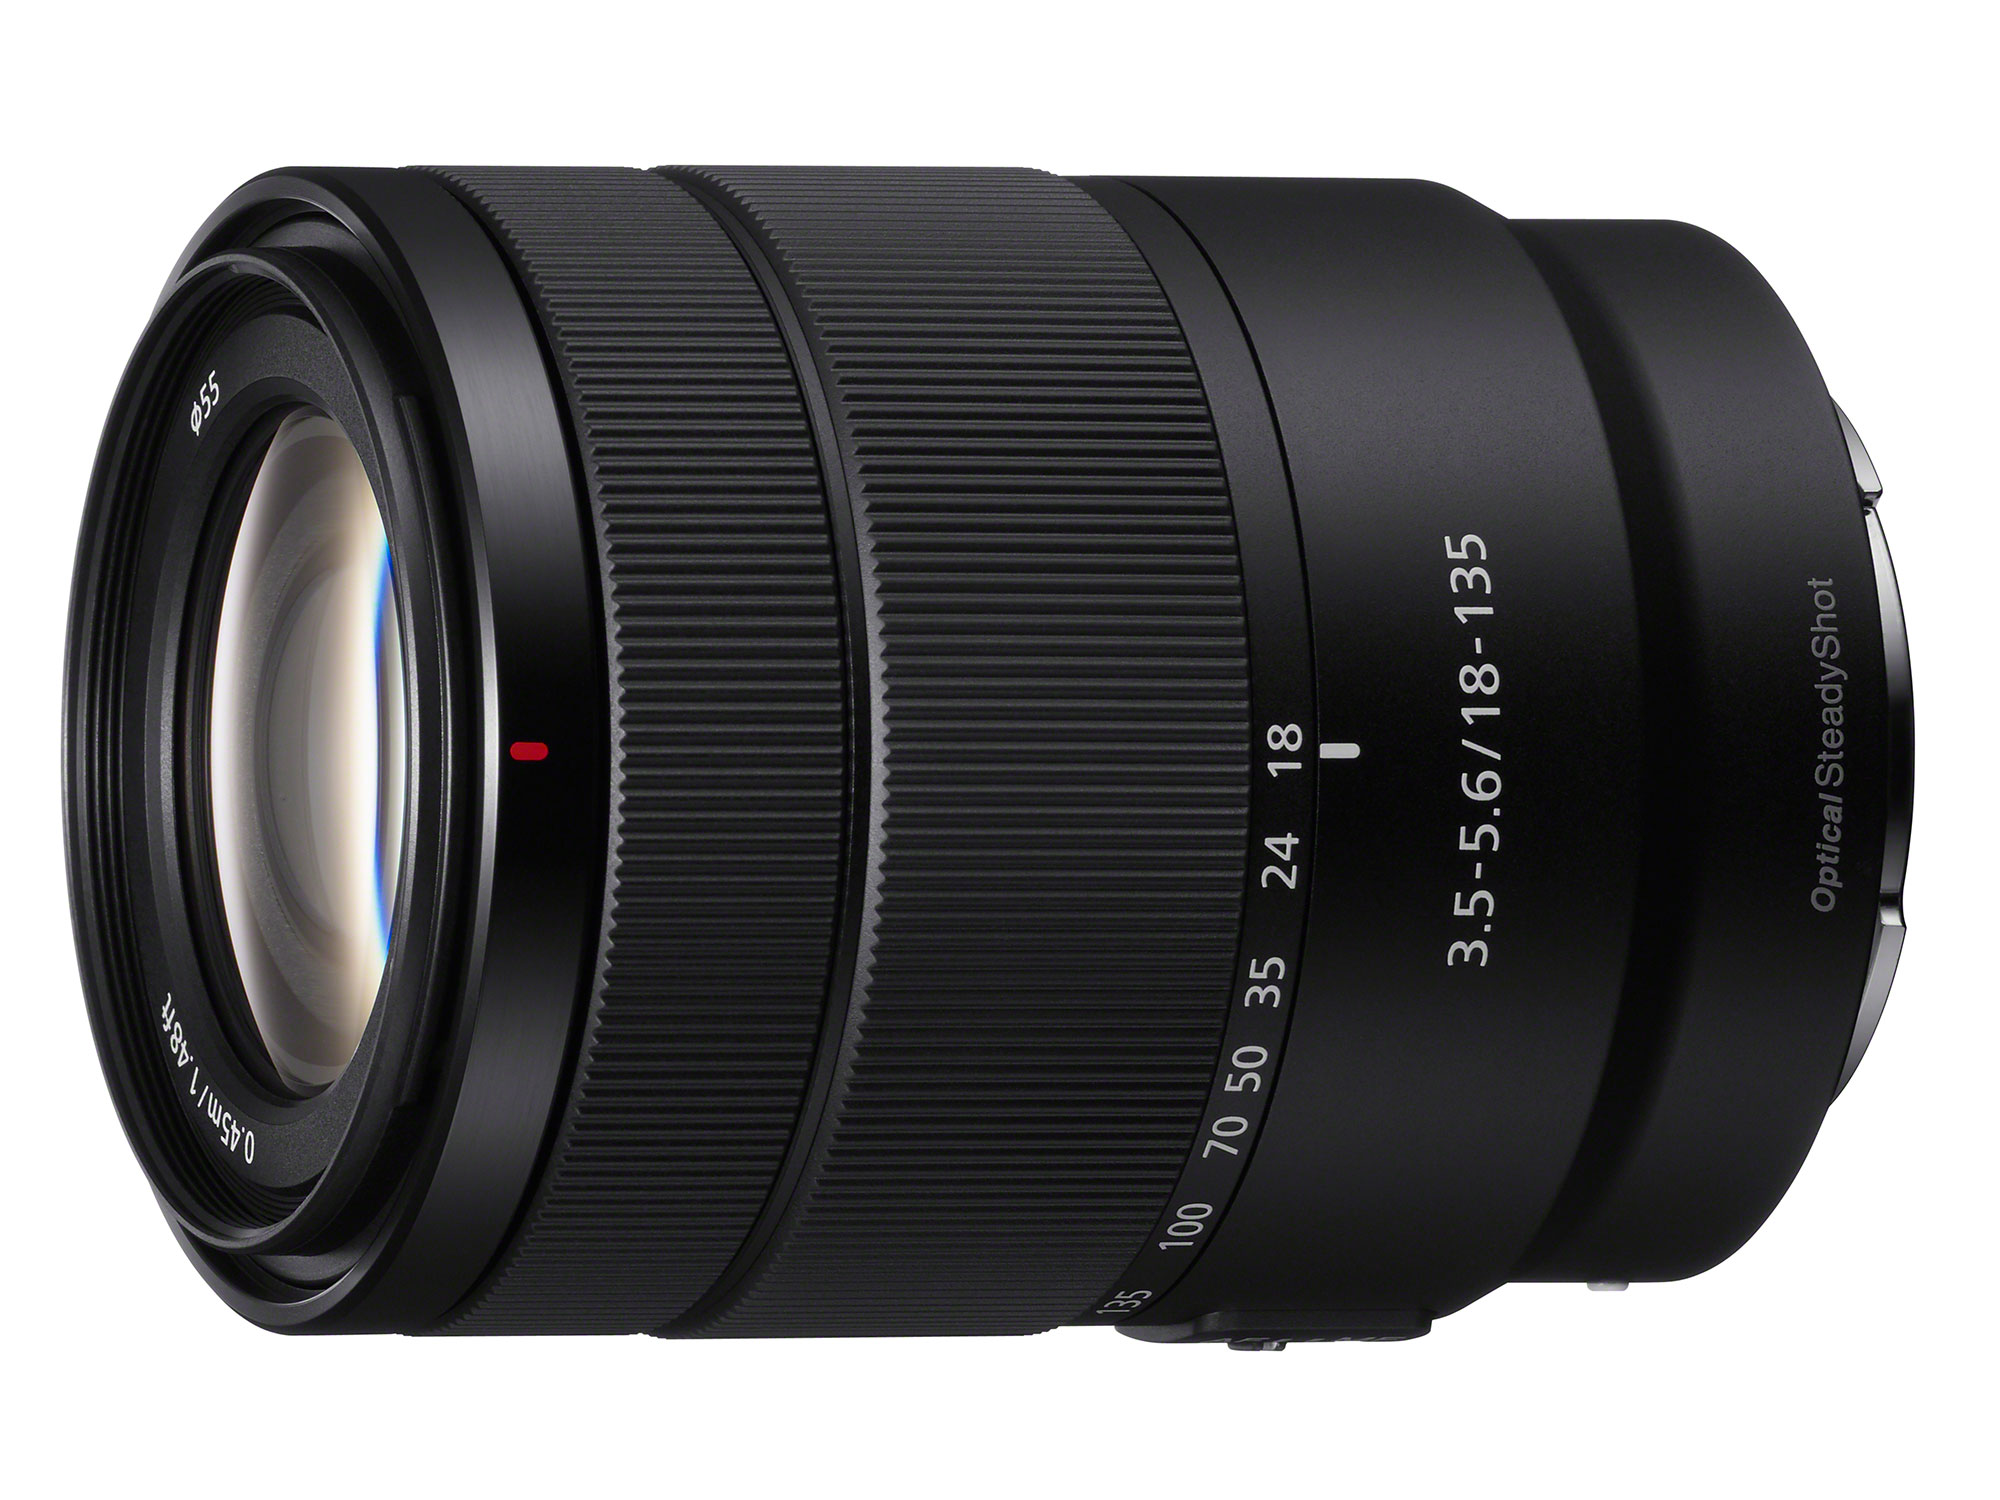 Sony E 18-135mm f/3.5-5.6 OSS Lens Reviews Roundup